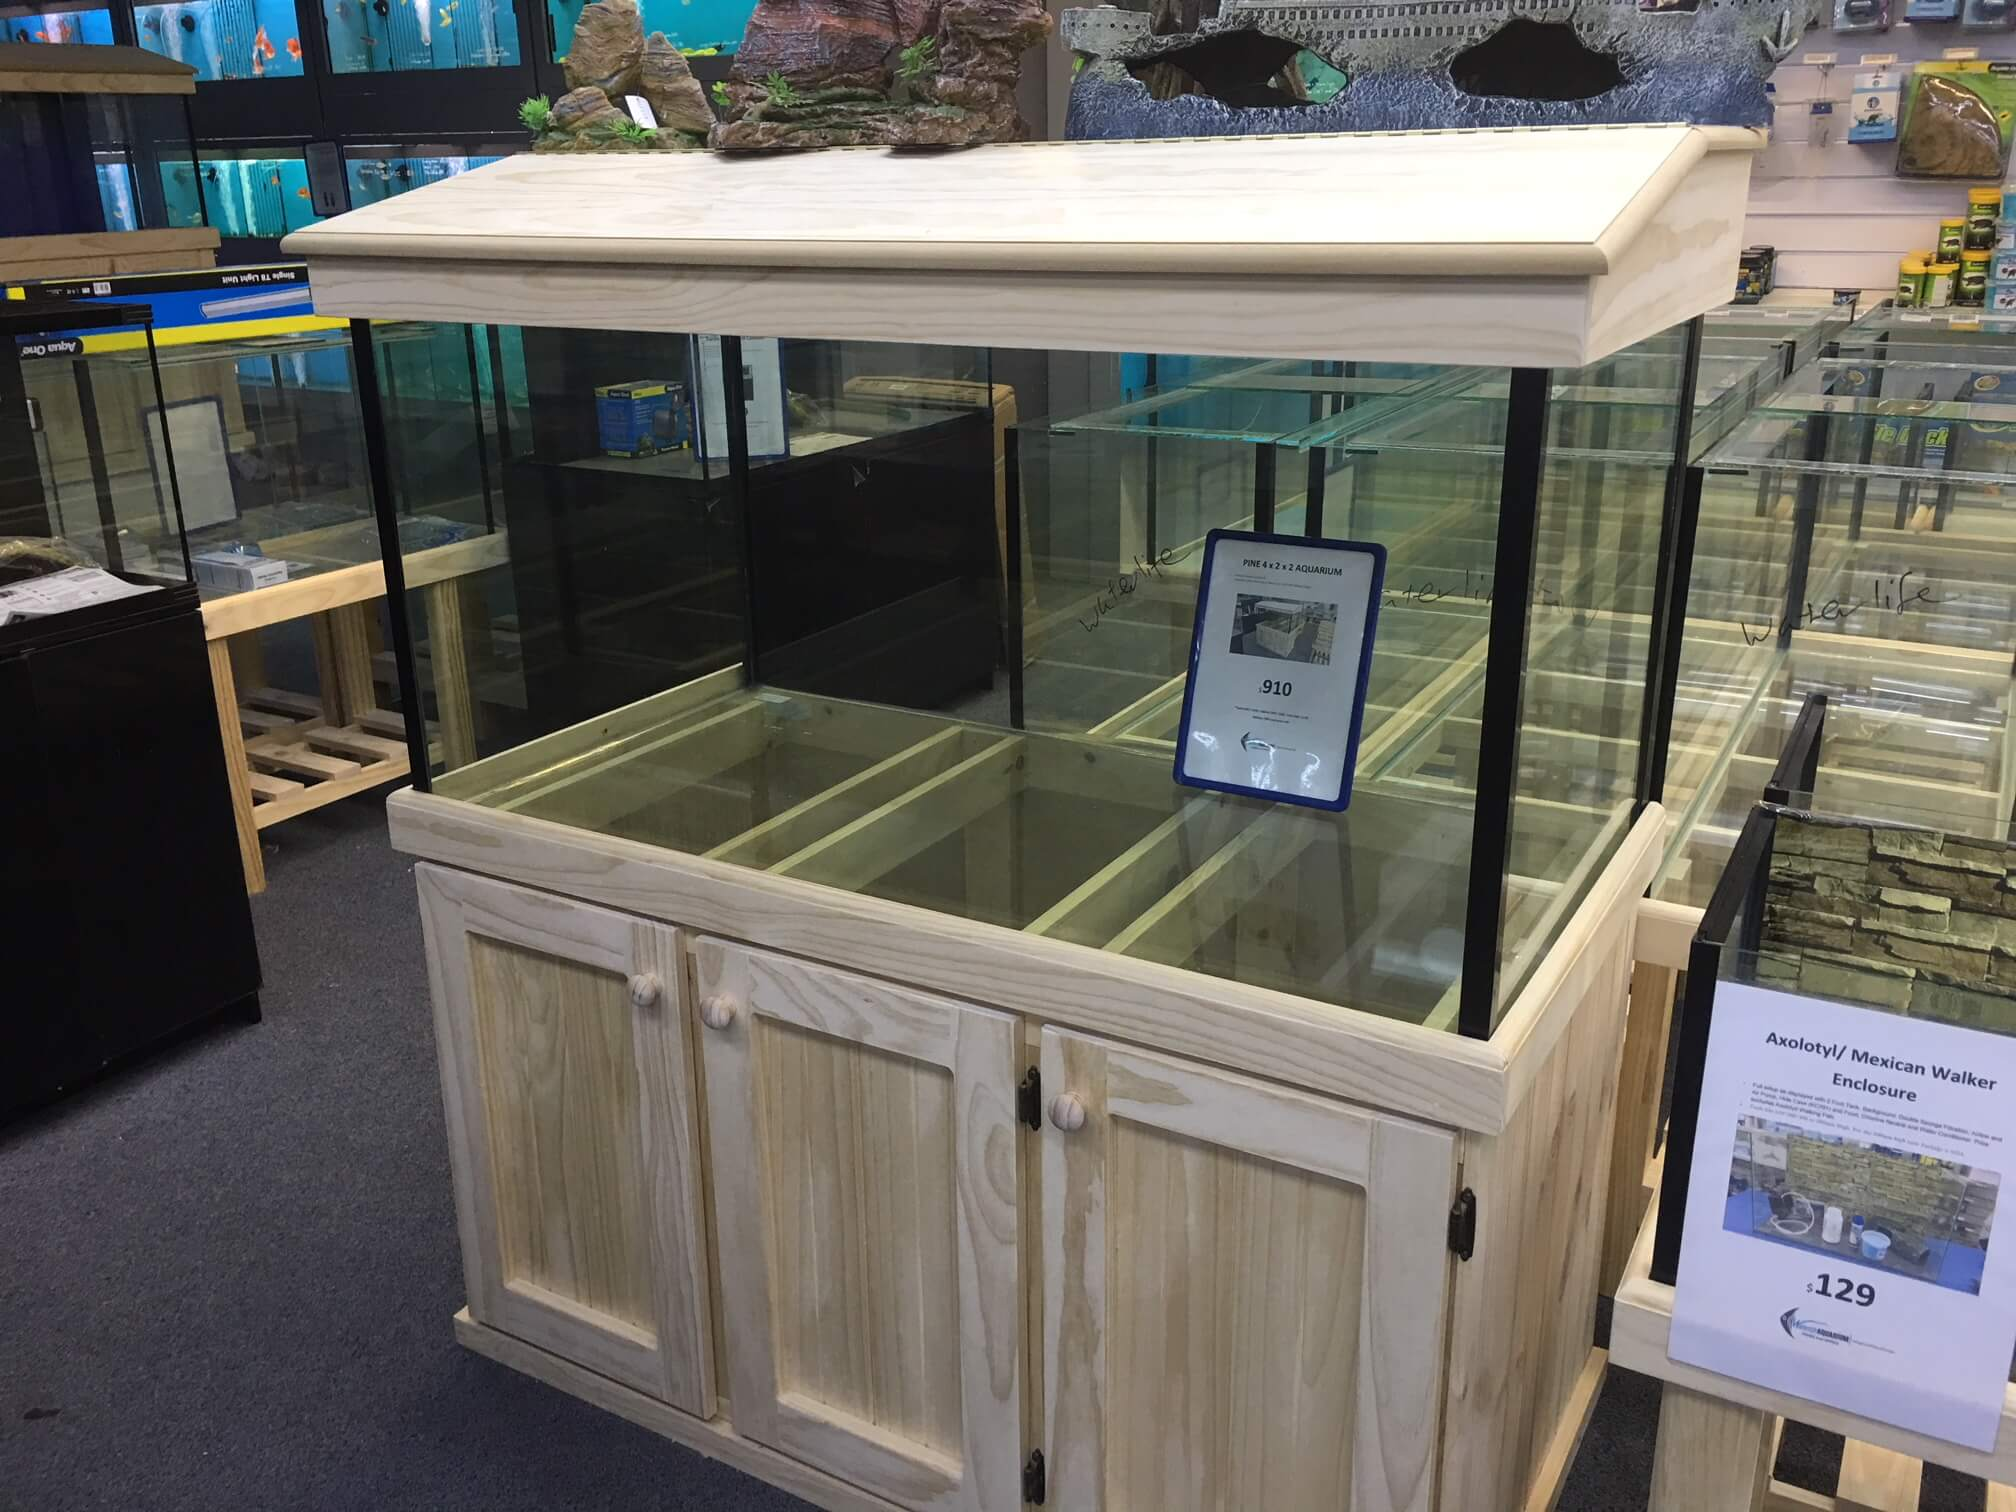 Fish Tank Cabinets Melbourne | Mail Cabinet